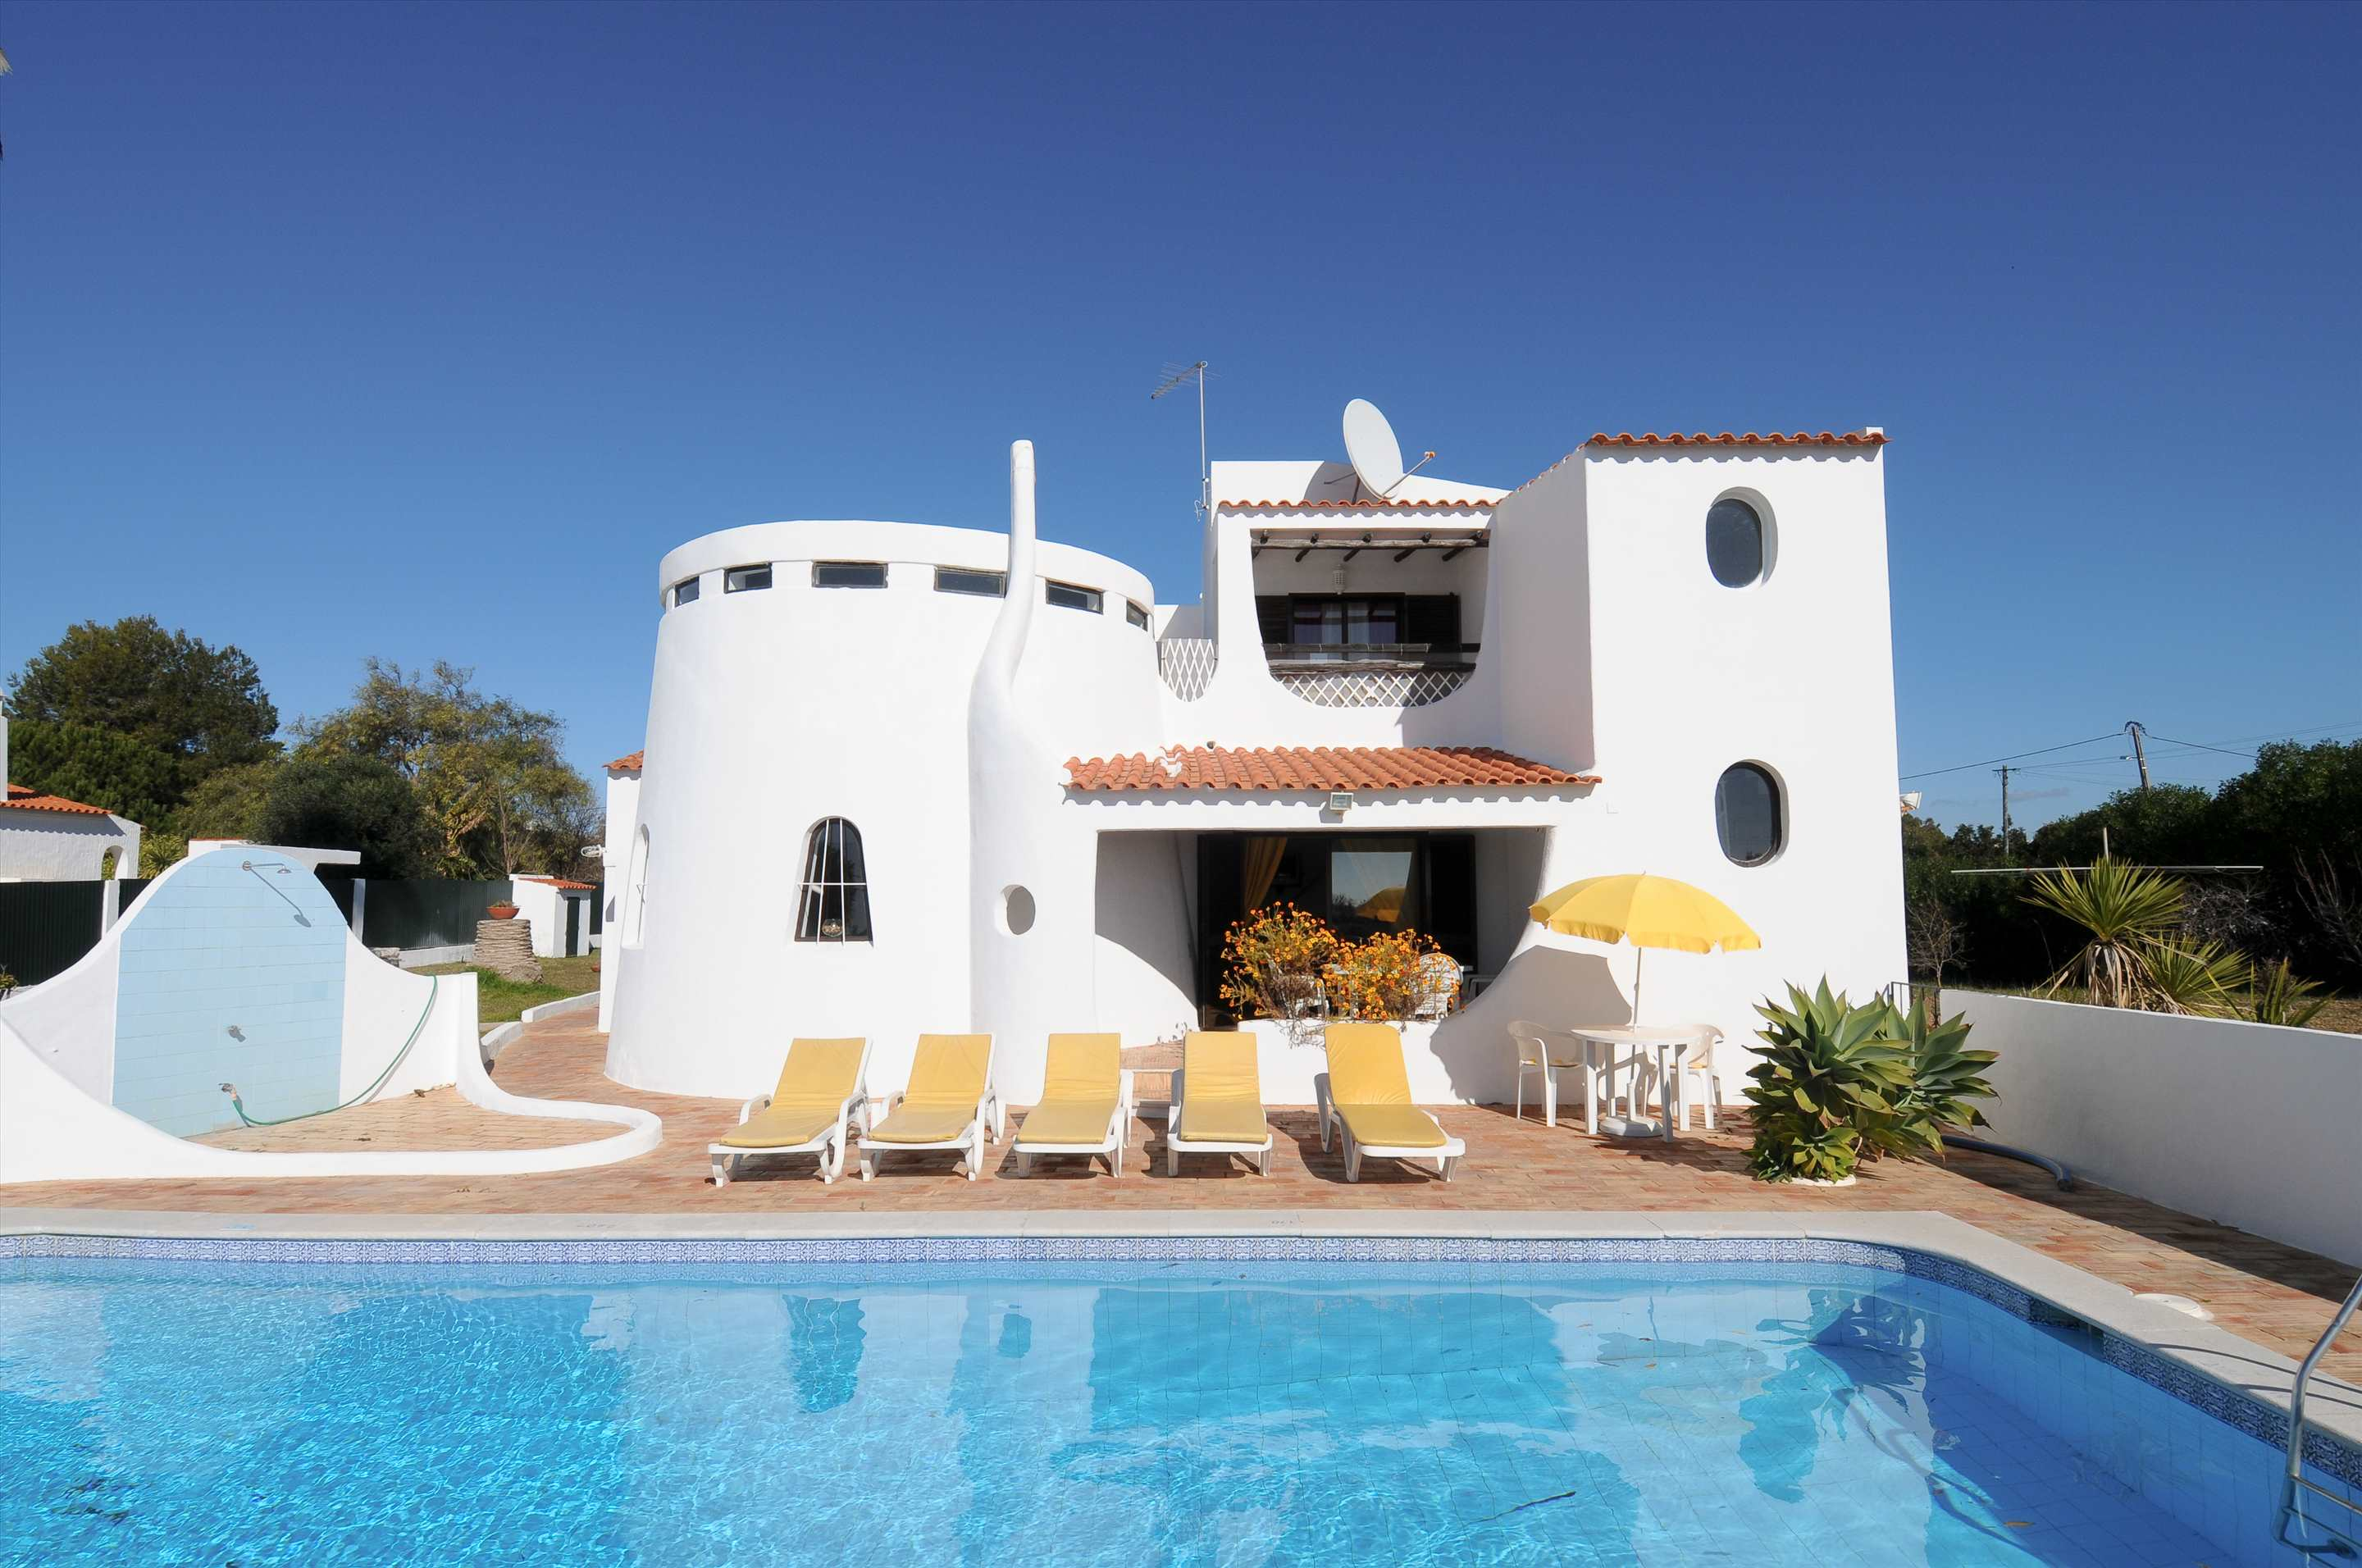 Casa Alexandra, 7-8 persons rate, 4 bedroom villa in Carvoeiro Area, Algarve Photo #7